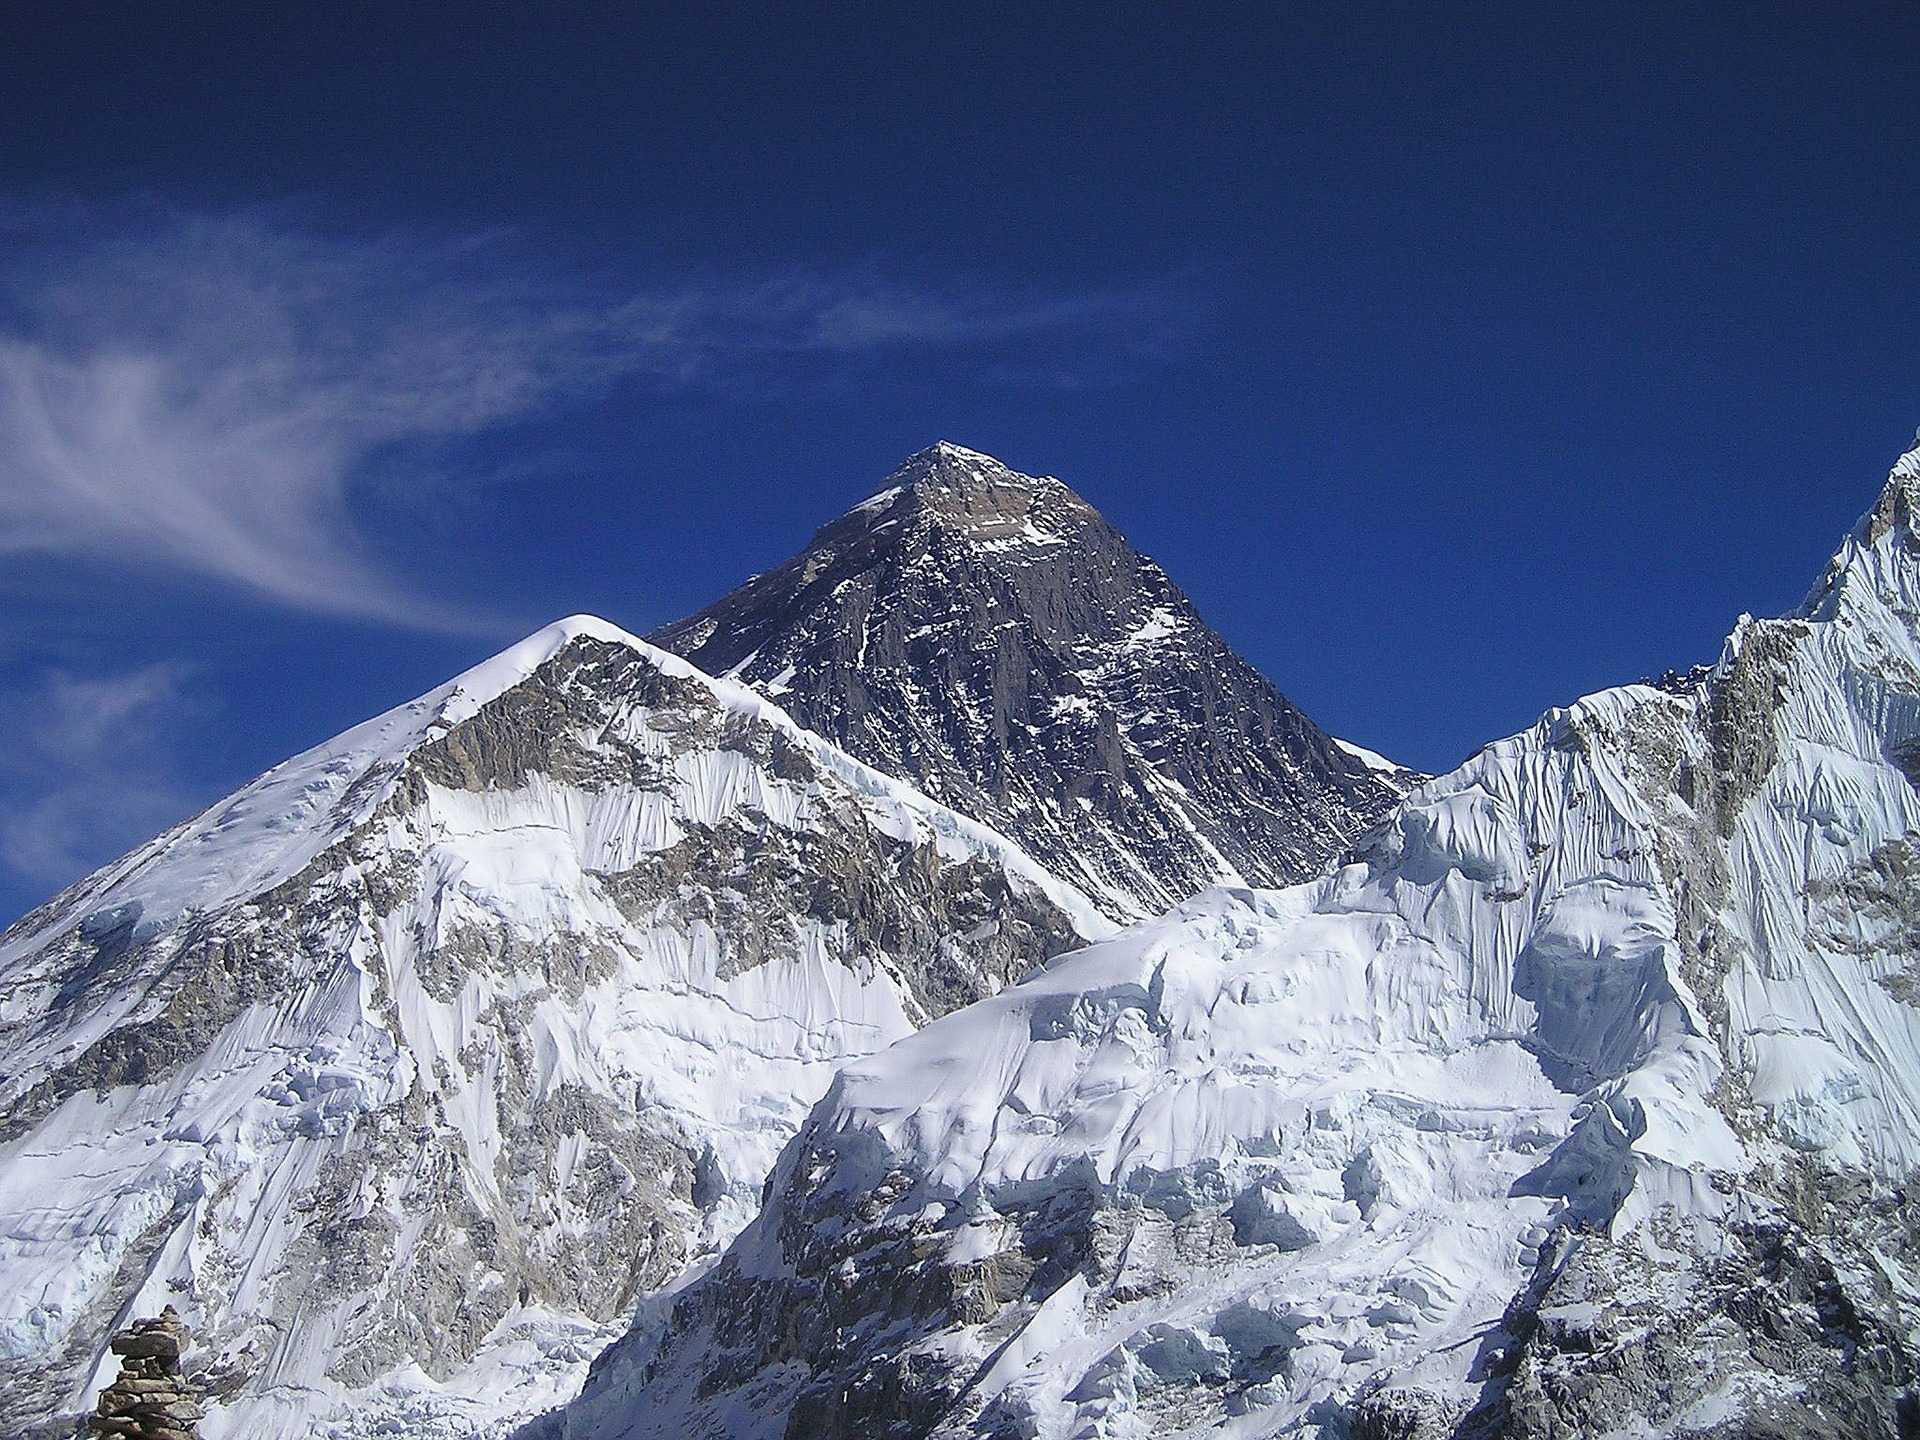 Example of sublimation on Mt. Everest.